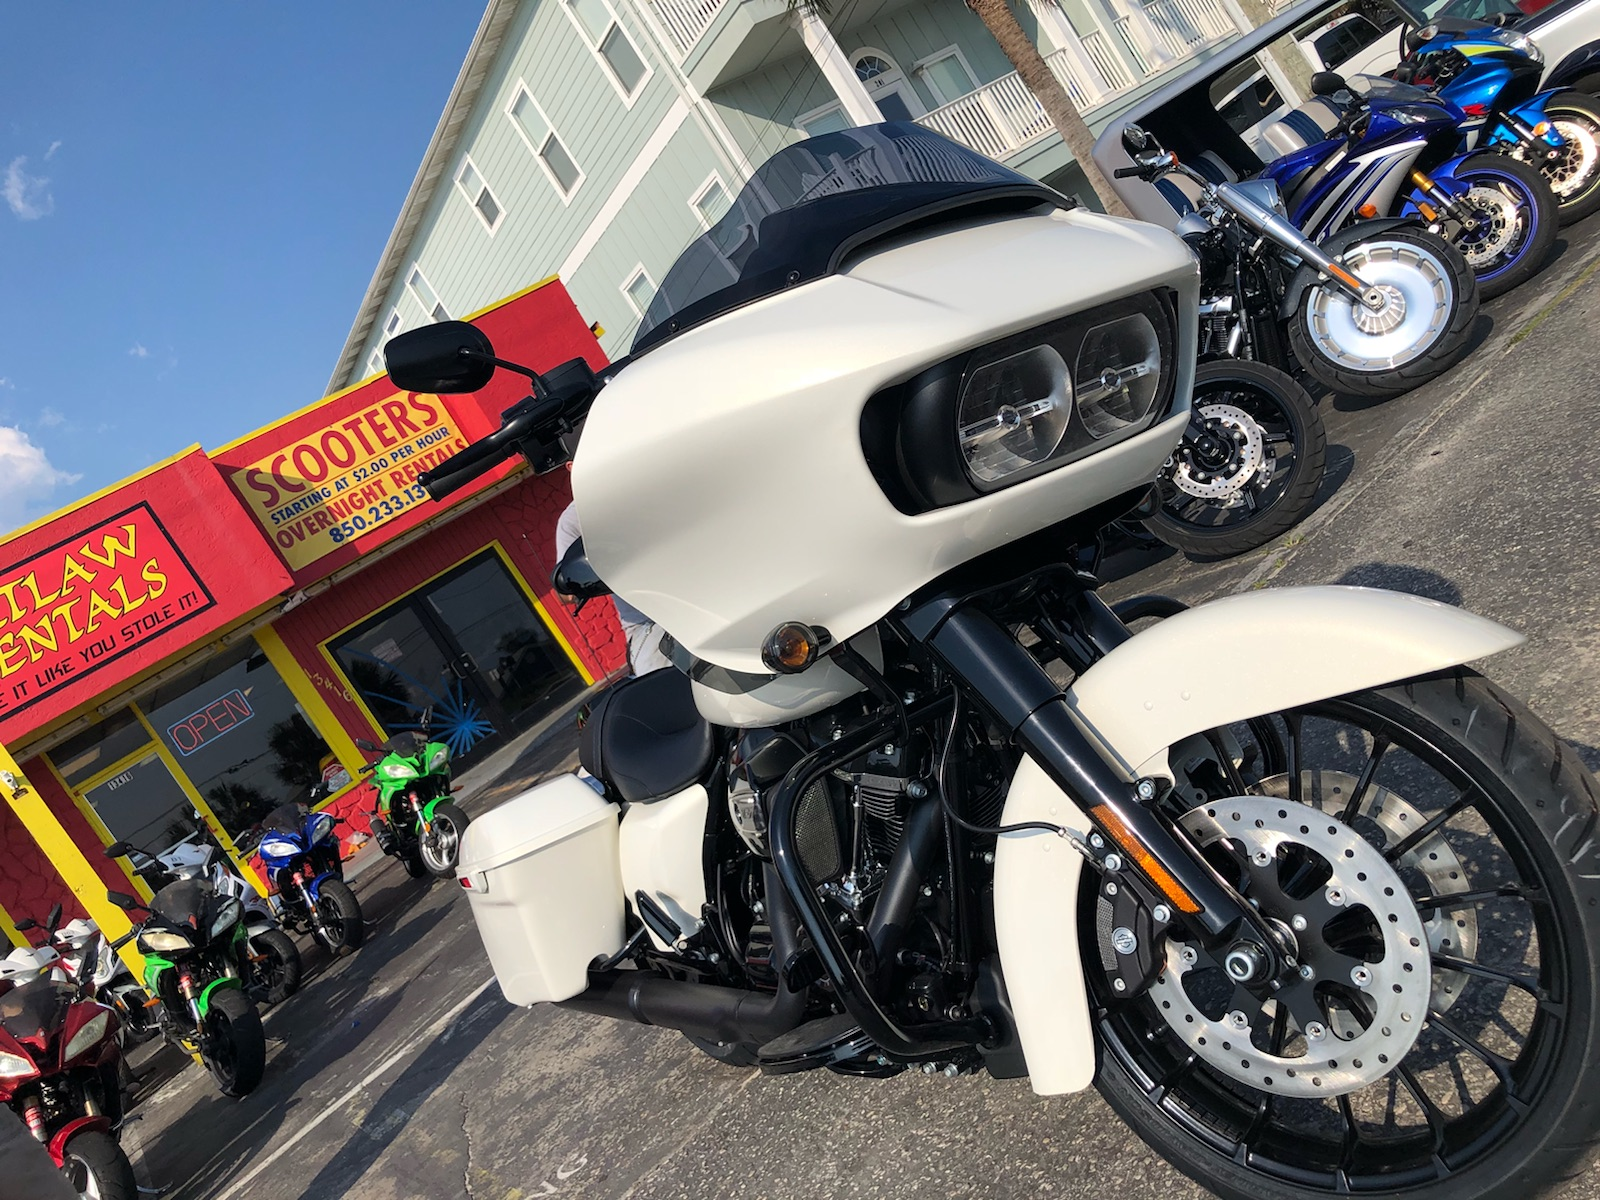 Outlaw_Rentals_-_California_Cycles_-_Panama_City_Beach_Motorcycle_Rental